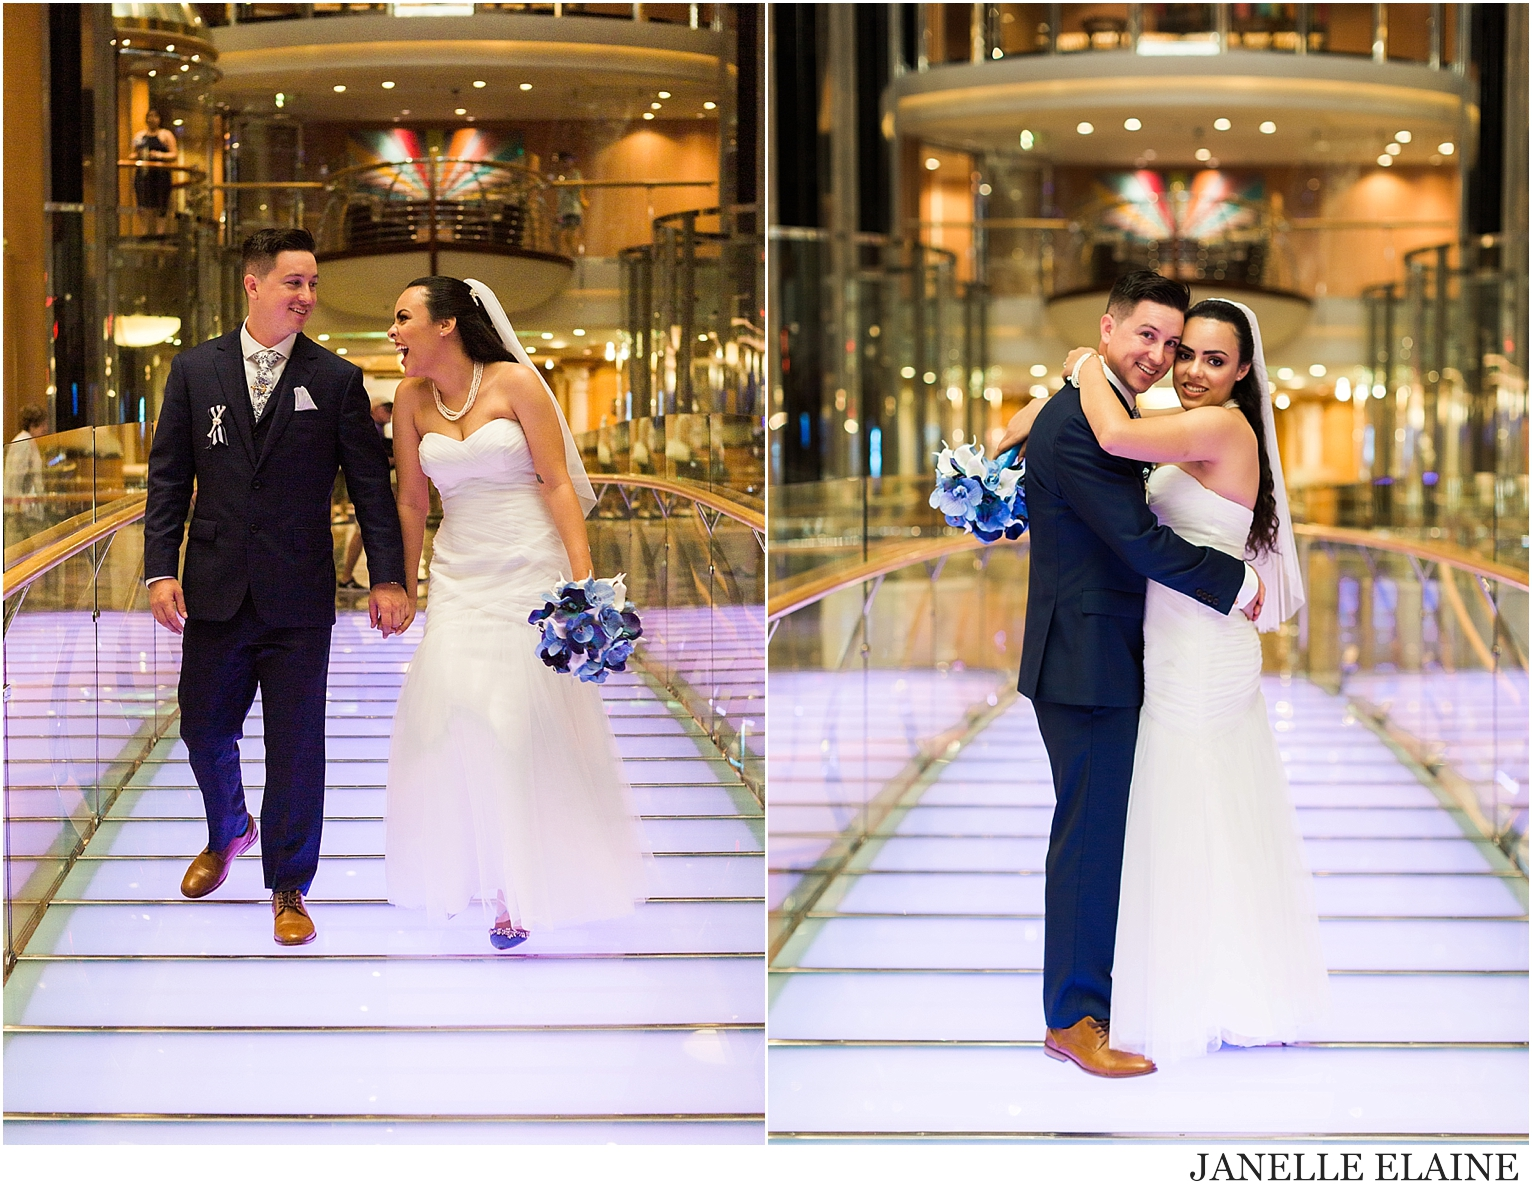 white wedding-royal caribbean-janelle elaine photography-176.jpg